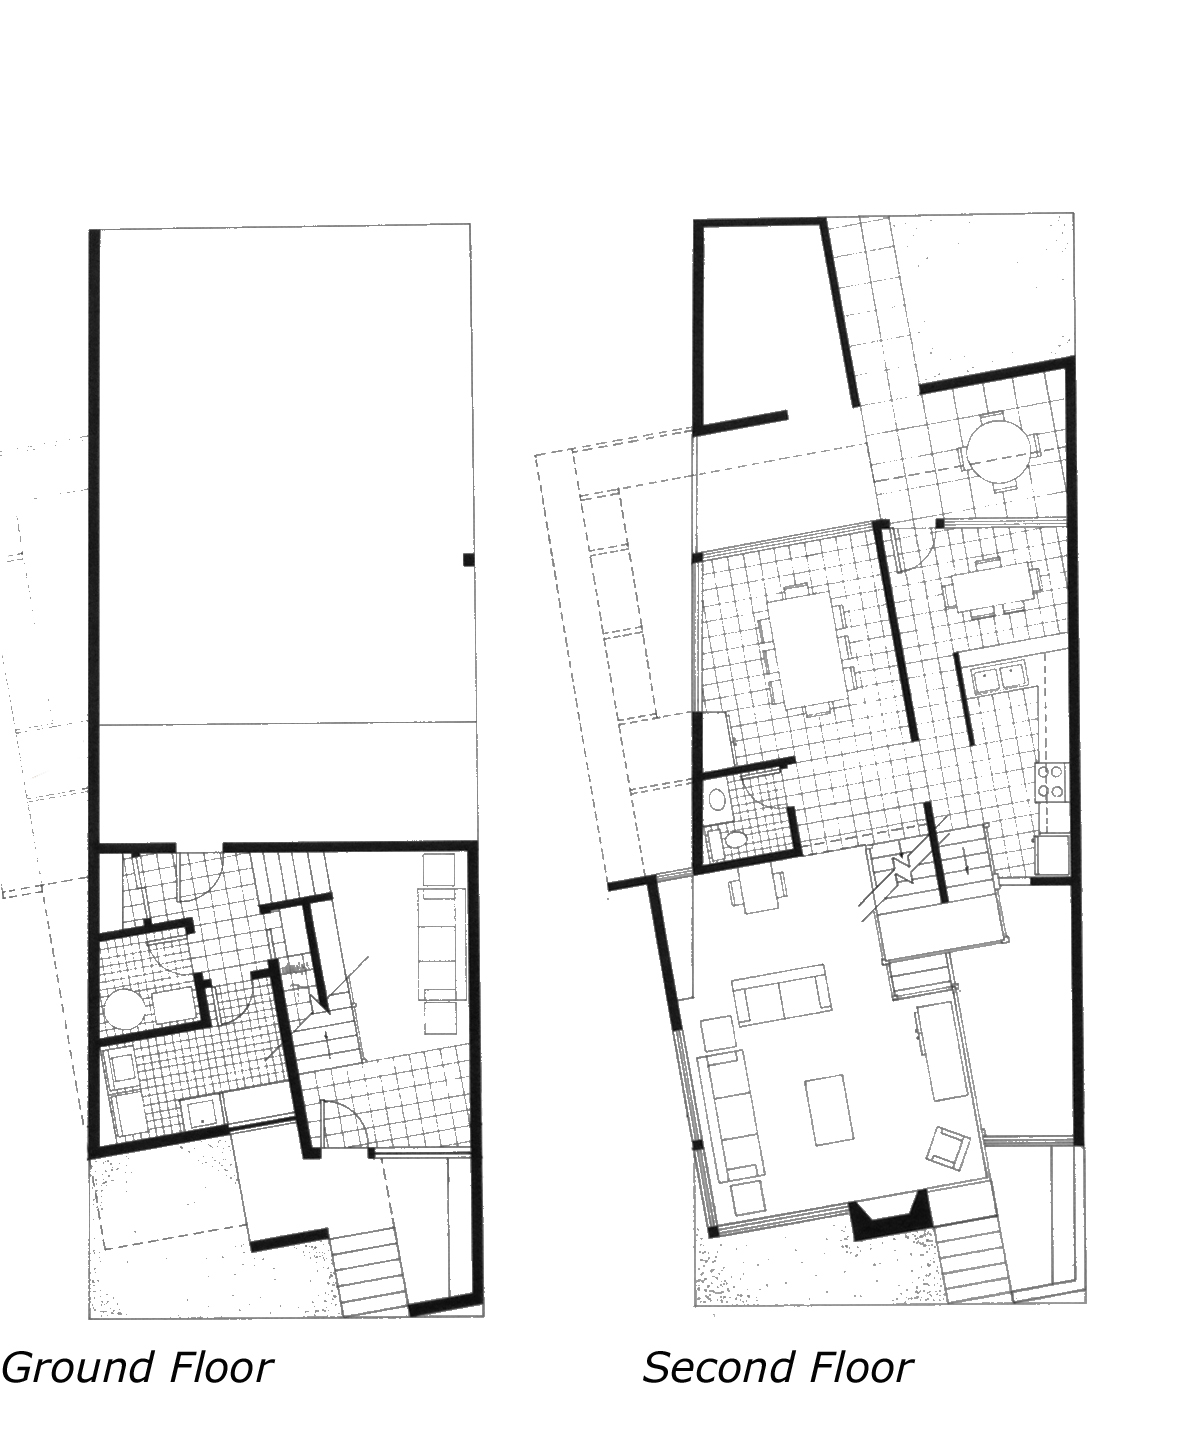 Home plan drawing at free for personal for Plot plan drawing software